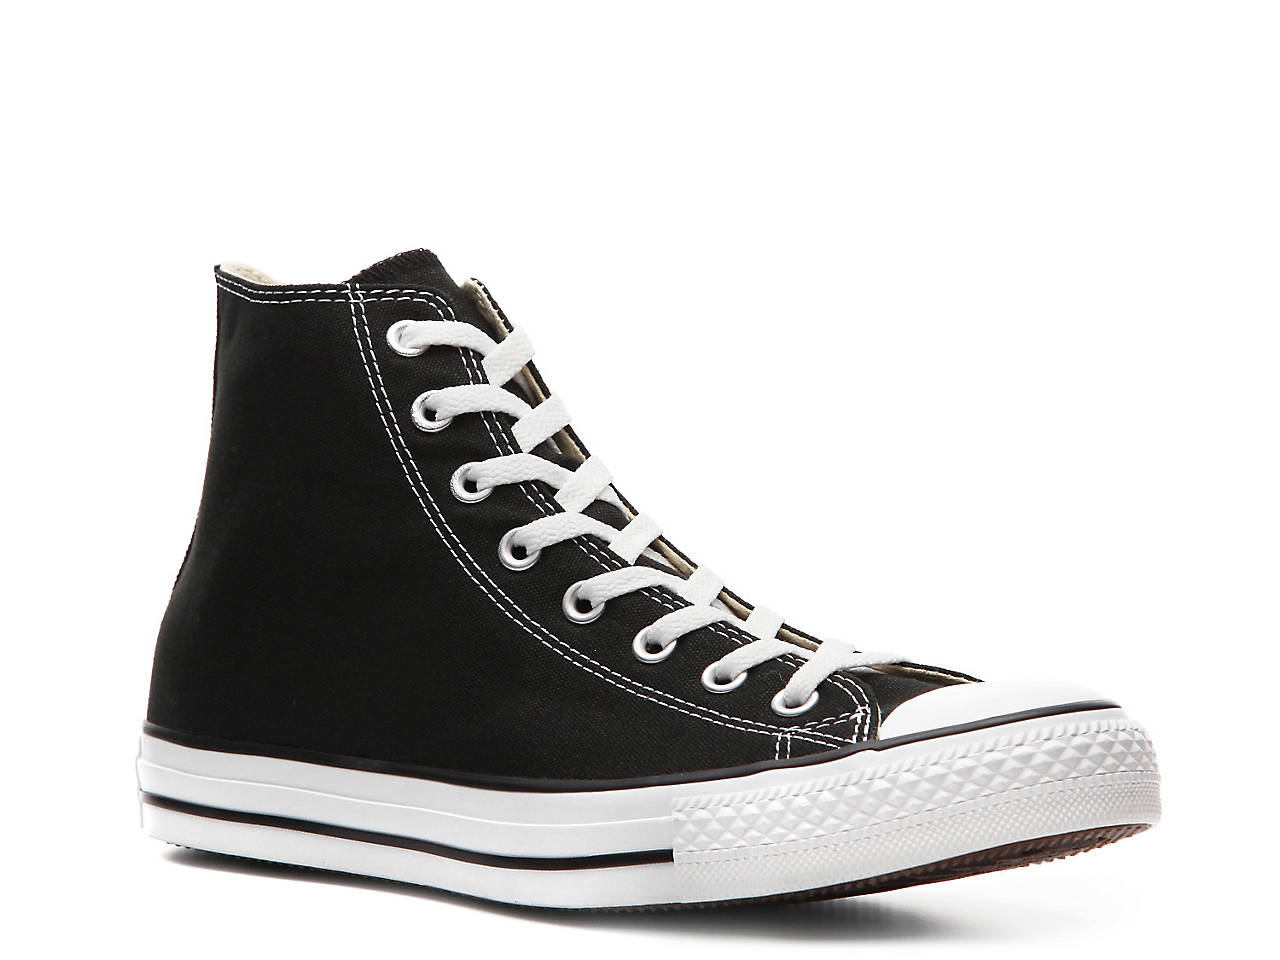 8abf8613bd85 Converse Chuck Taylor All Star High-Top Sneaker - Men s Men s Shoes ...